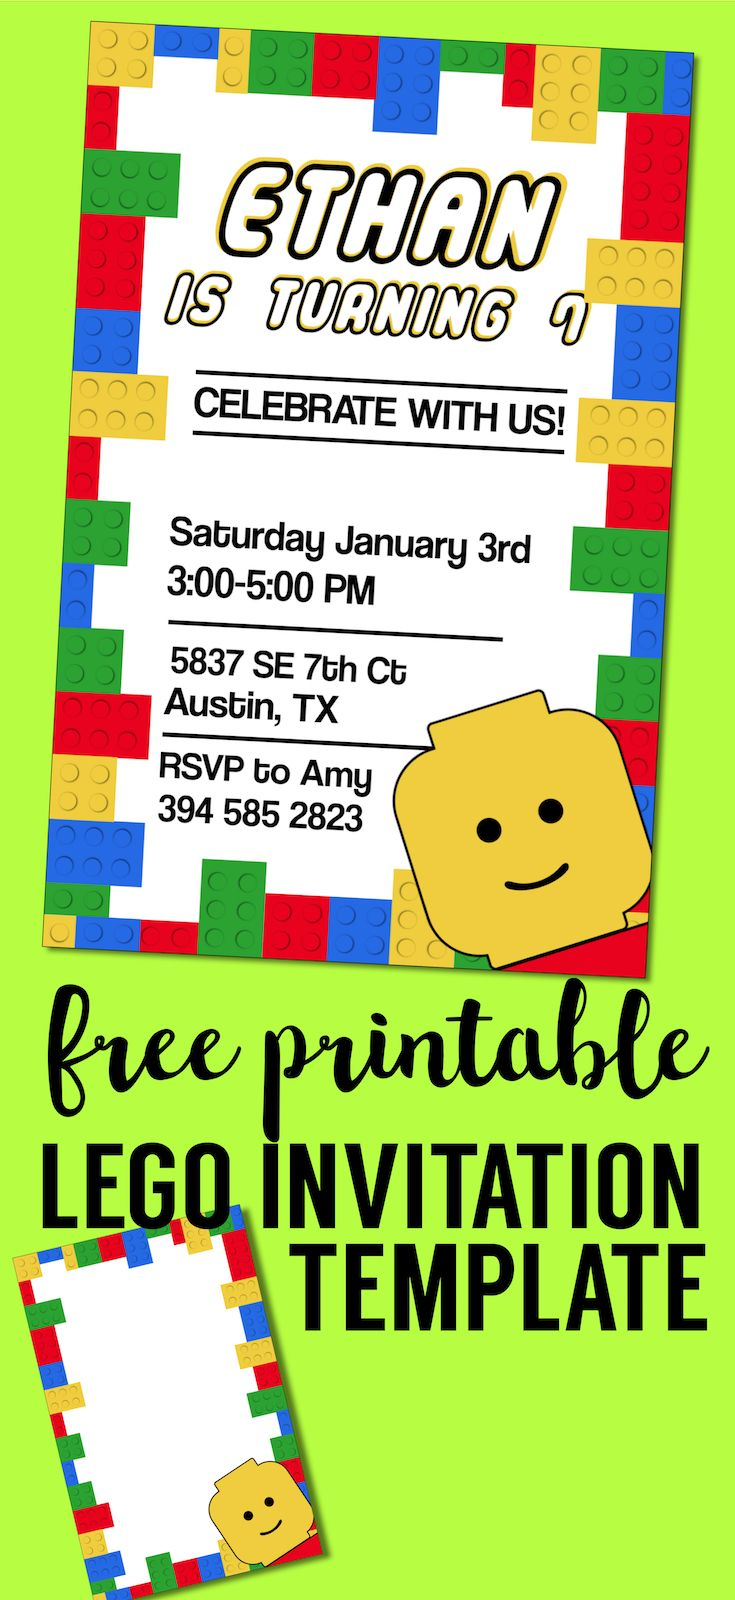 Free Printable Lego Birthday Party Invitation Template | Pinterest ...